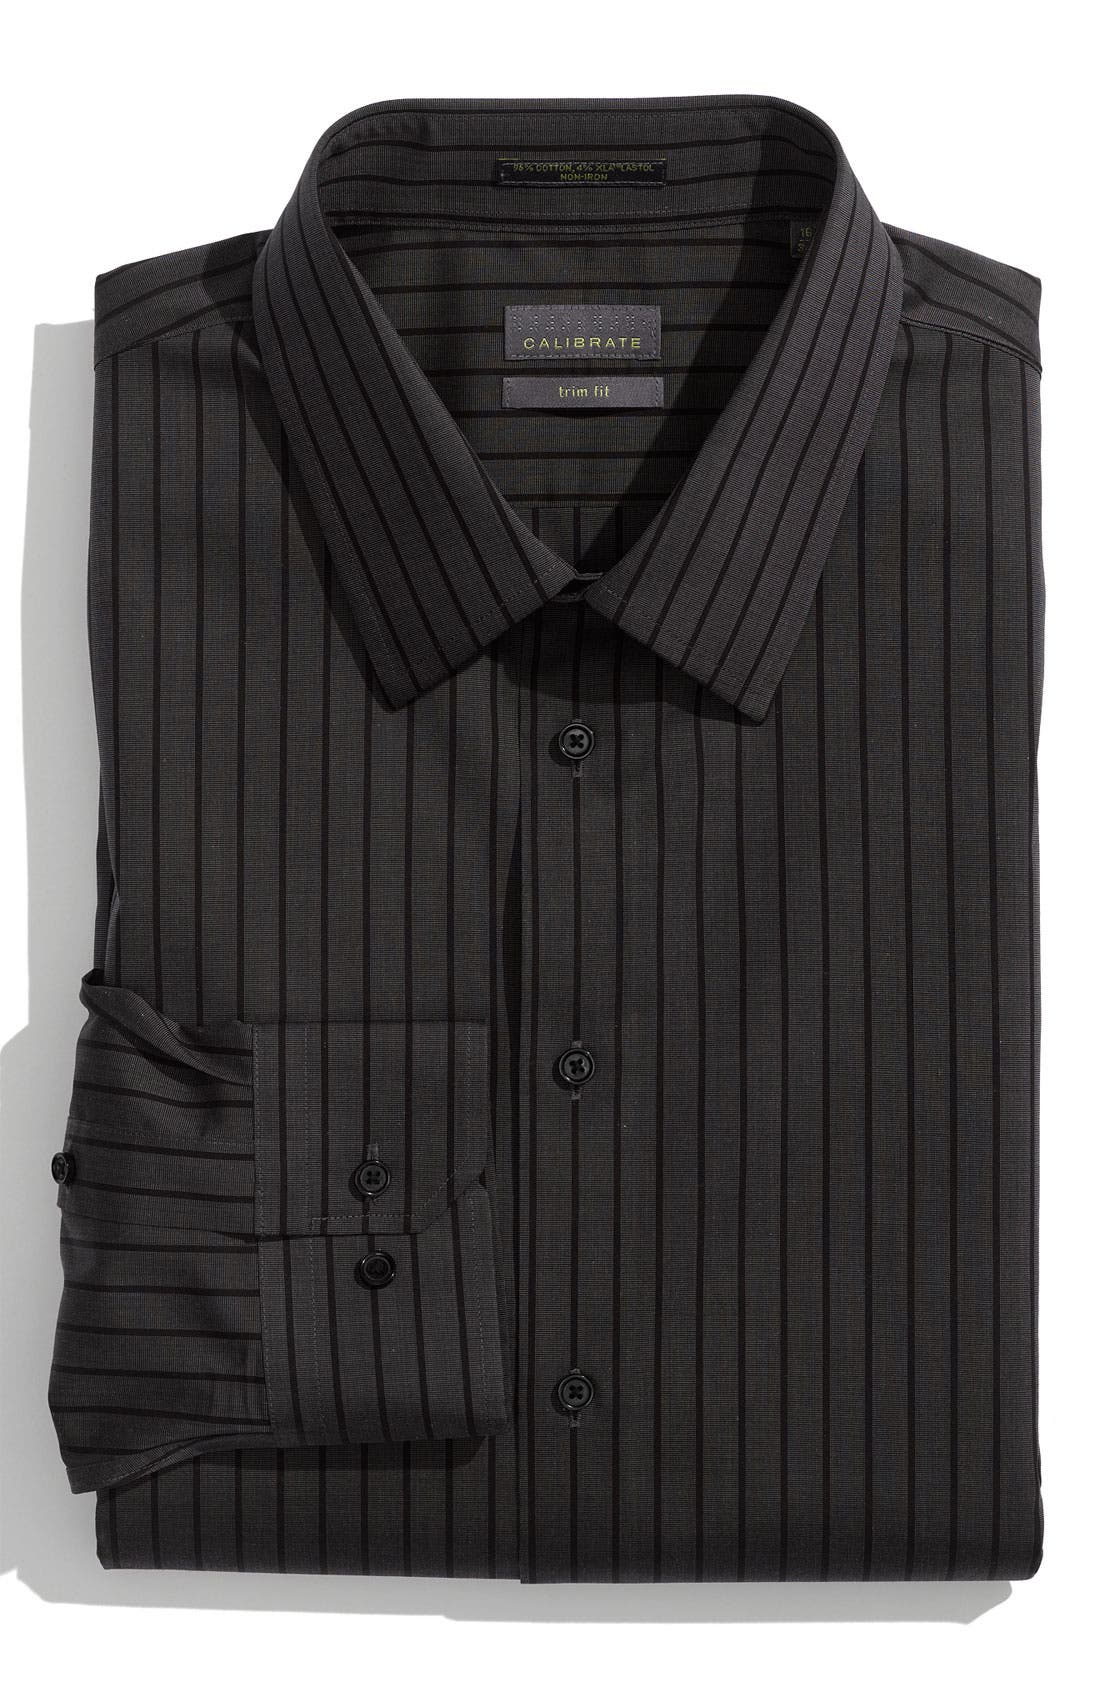 Alternate Image 1 Selected - Calibrate Non Iron Trim Fit Dress Shirt